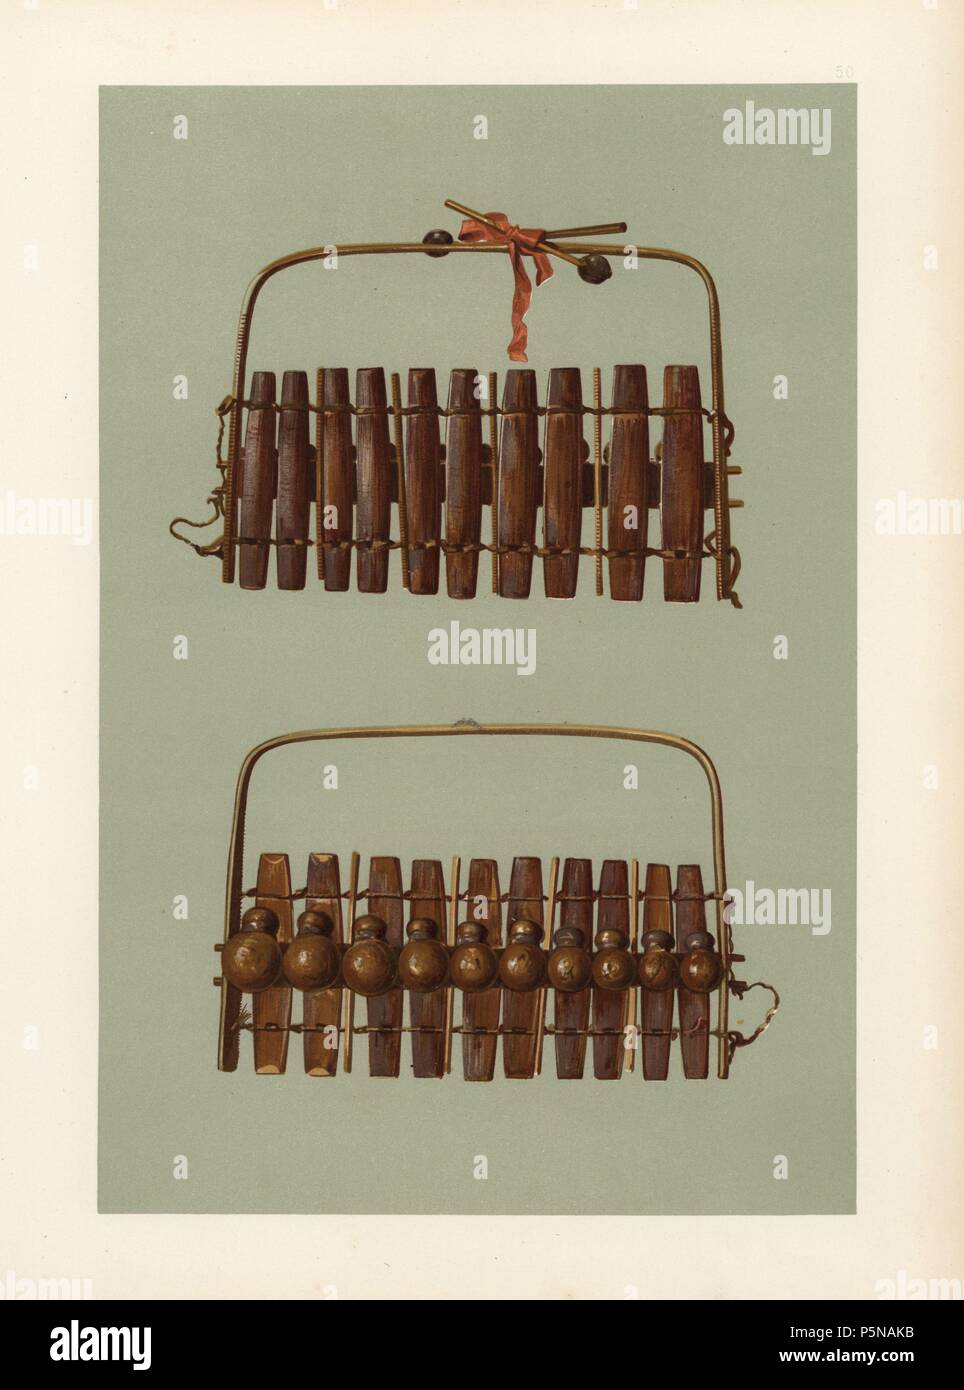 Marimba Or Zulu Harmonicon Of South Africa It Has Ten Bars Each Domestic Electrical Wiring With A Gourd Resonator And Is Played Drumsticks